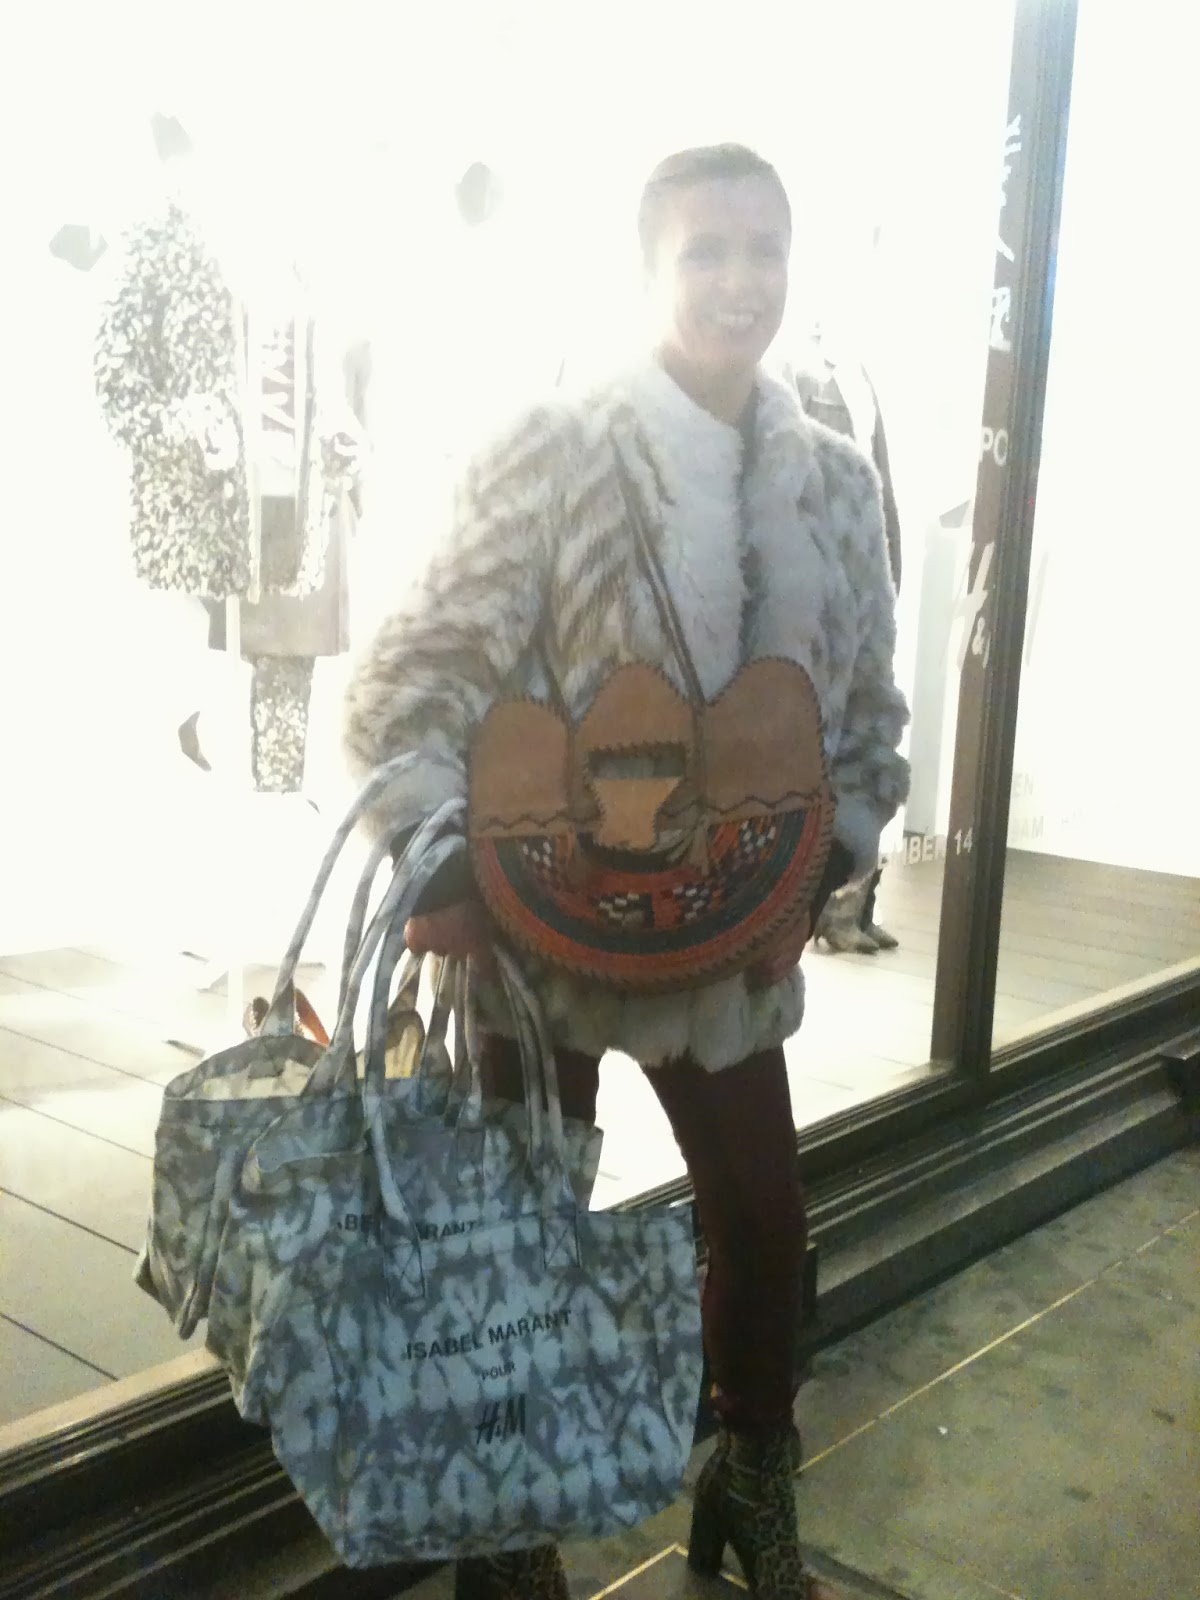 ccce8fbce7 Last night saw an exclusive shopping event preview: Isabel Marant pour H&M  collection, in London's West End. The world, and his best-dressed wife, ...